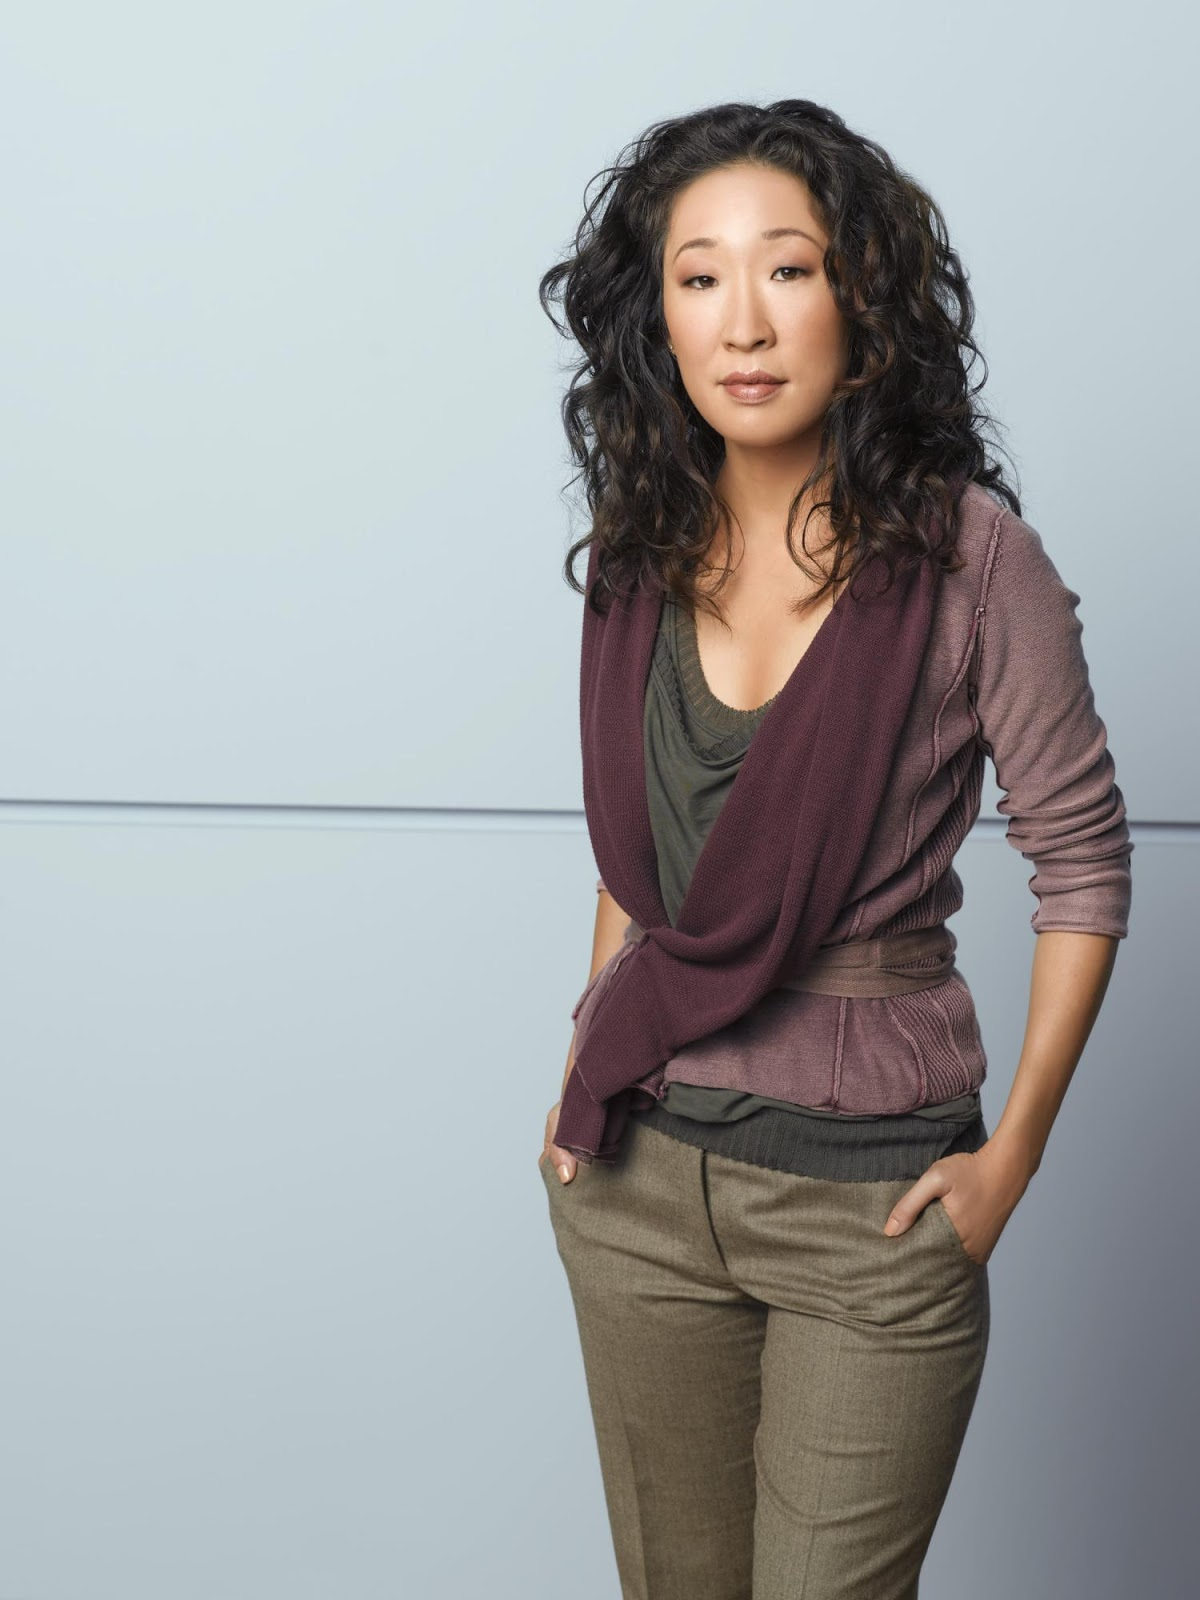 sandra oh - photo #31